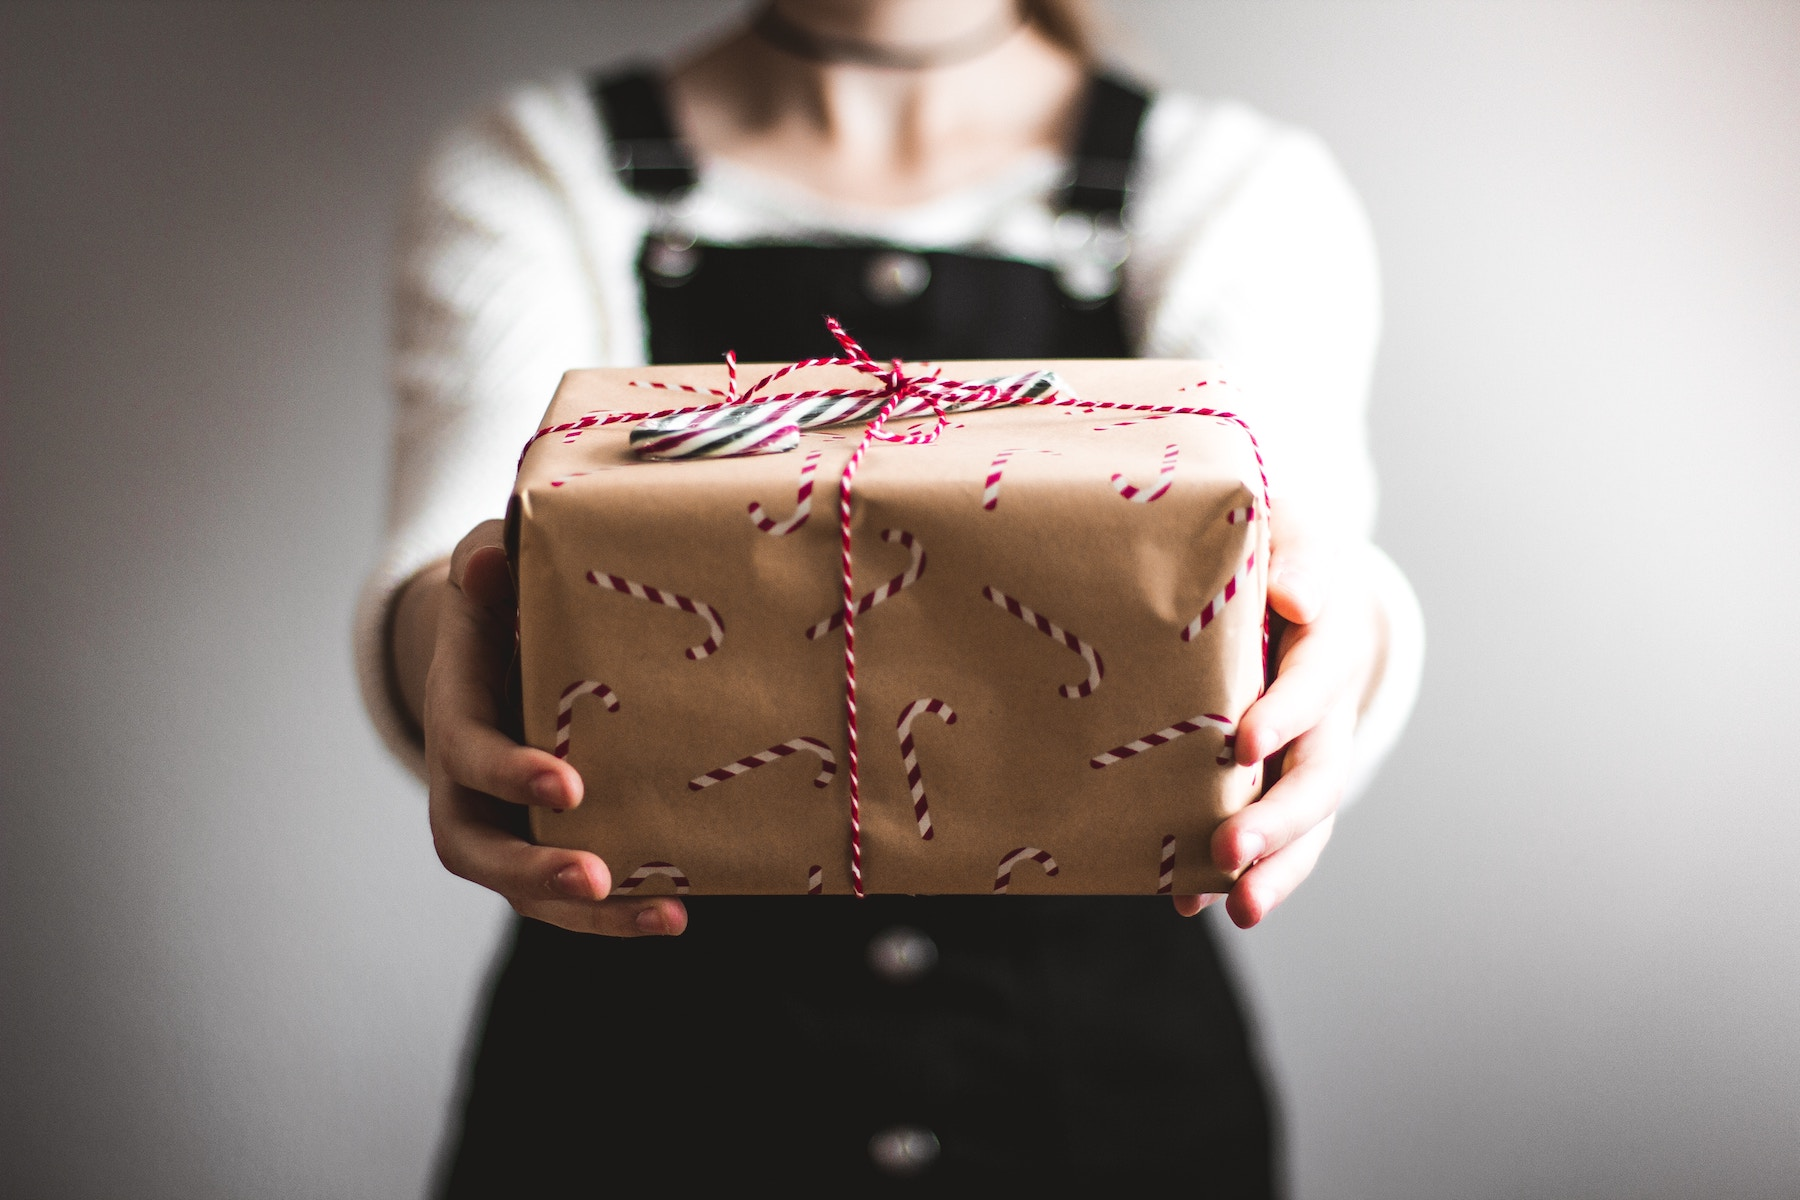 Woman presenting a wrapped gift with candy cane wrapping paper